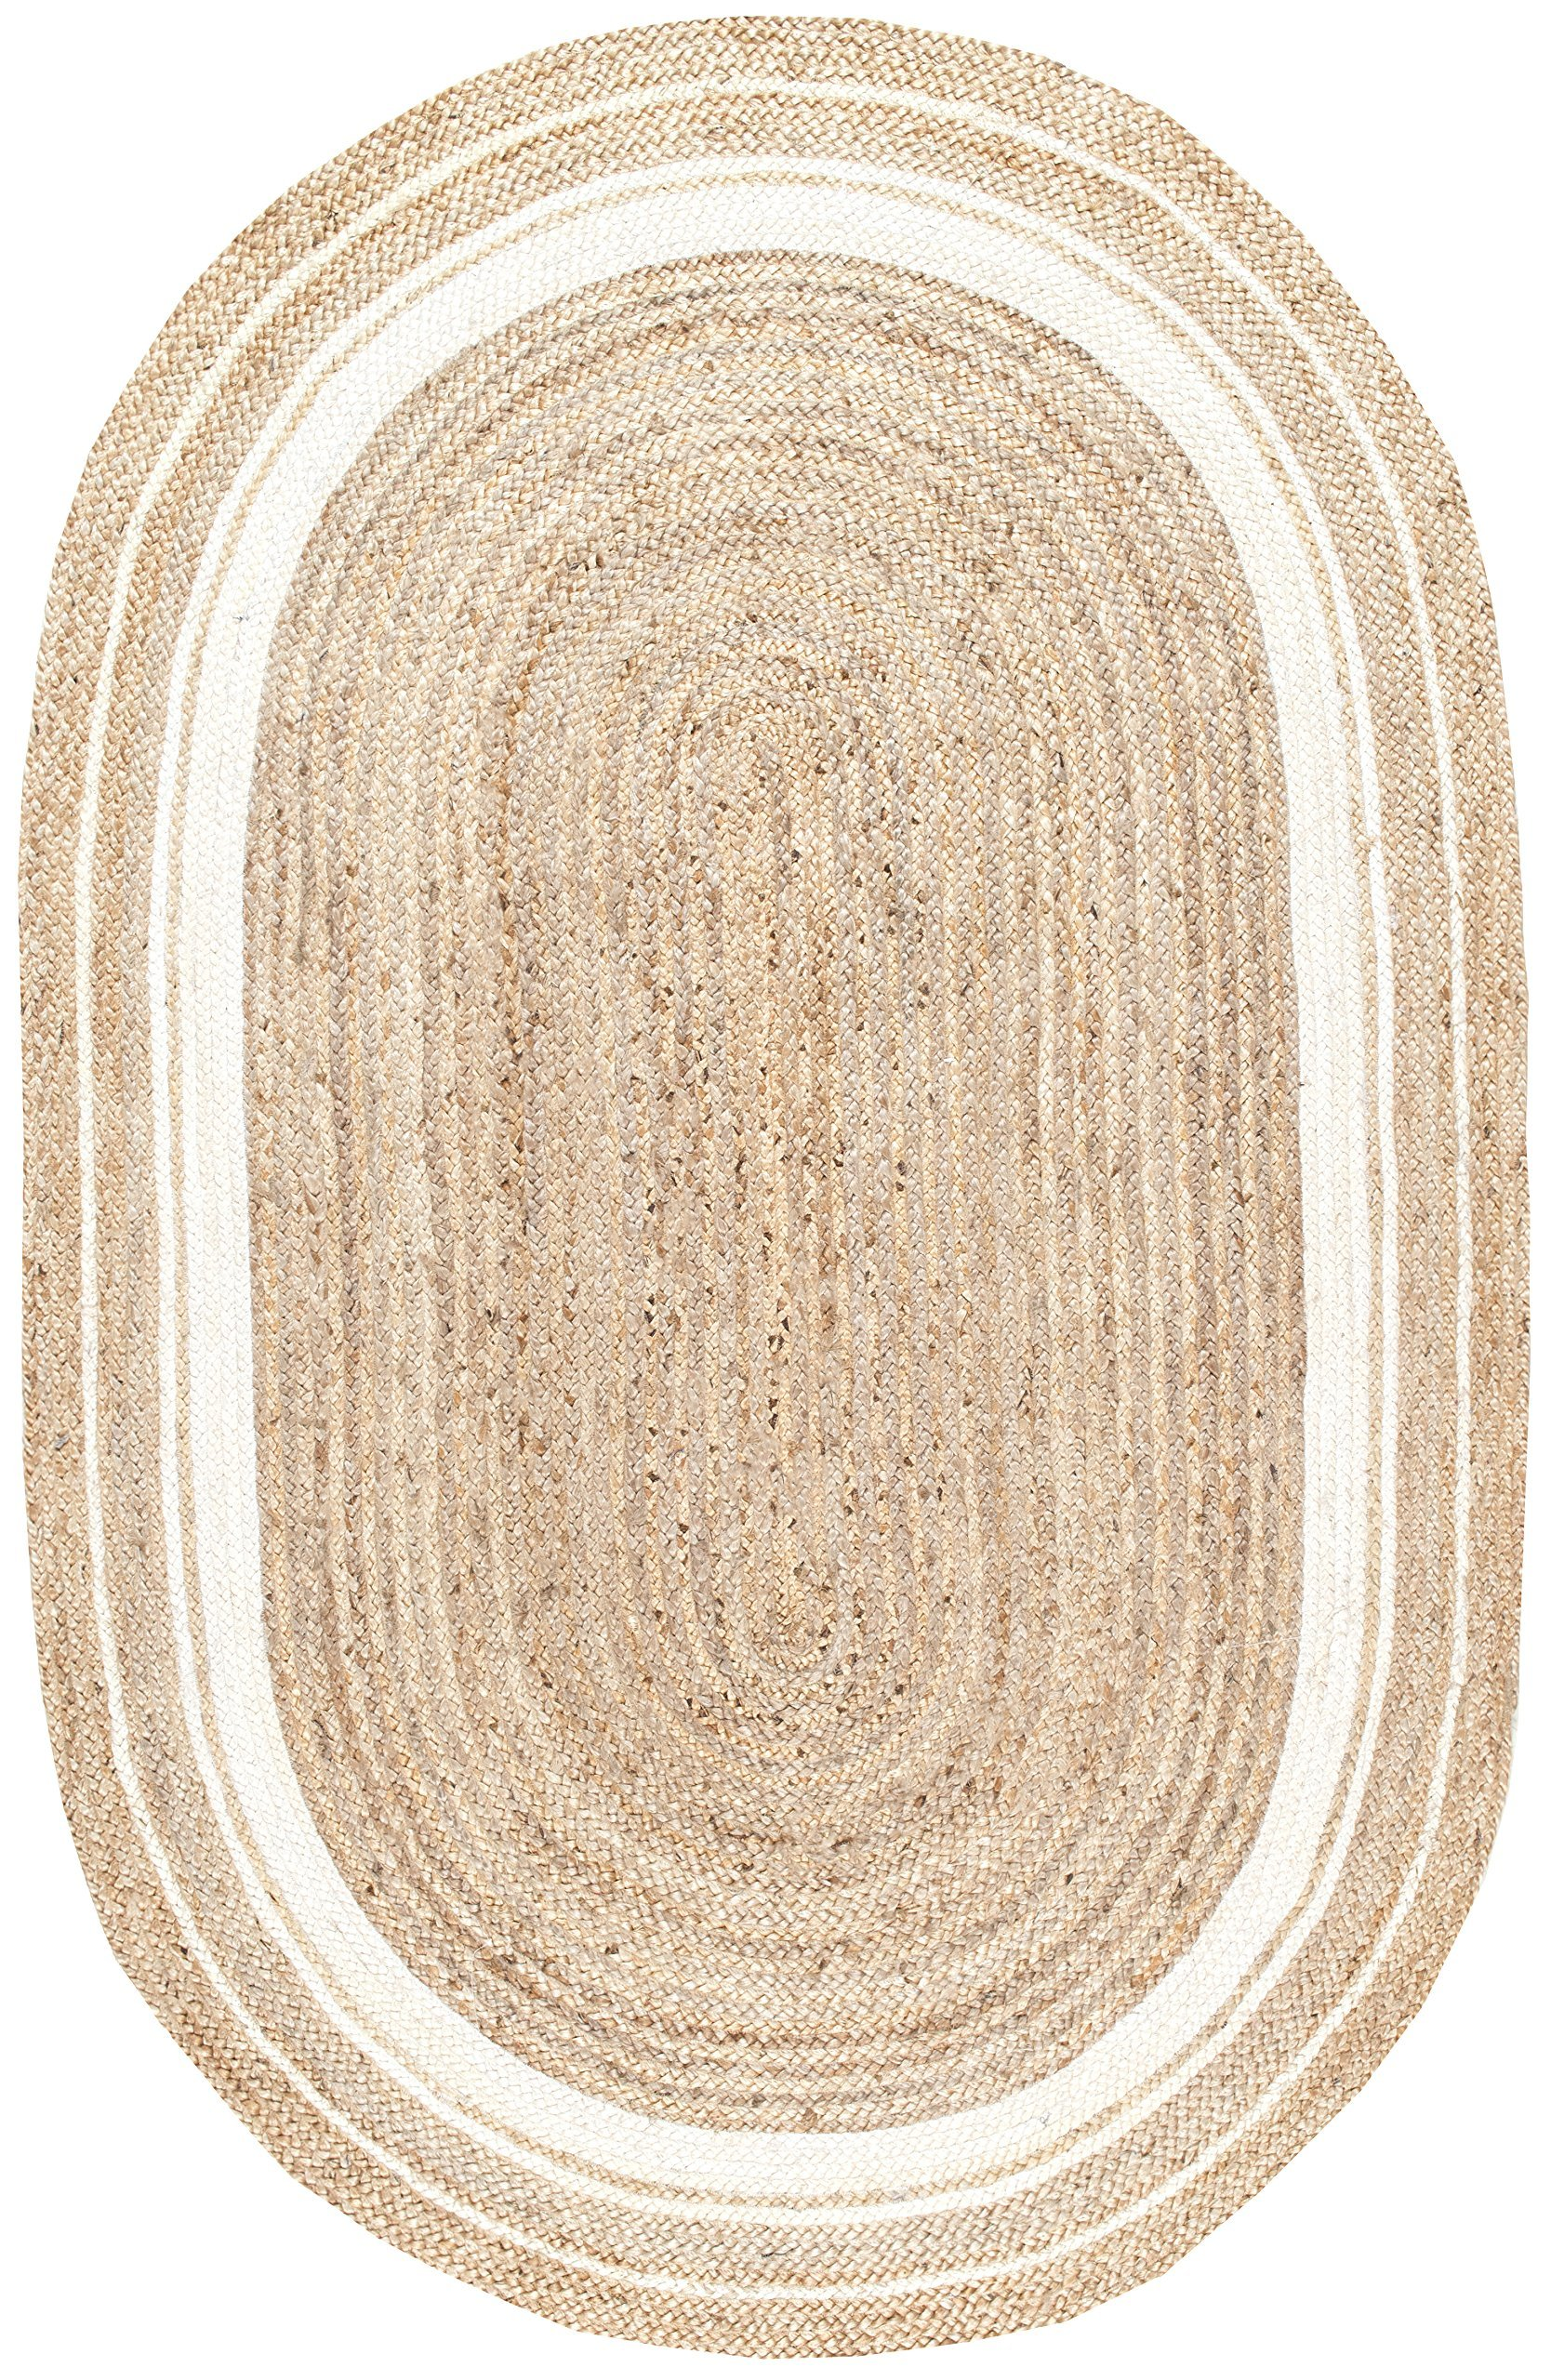 Stone & Beam Contemporary Rikki Border Jute Rug, 5' x 8' Oval, Bleached Denim by Stone & Beam